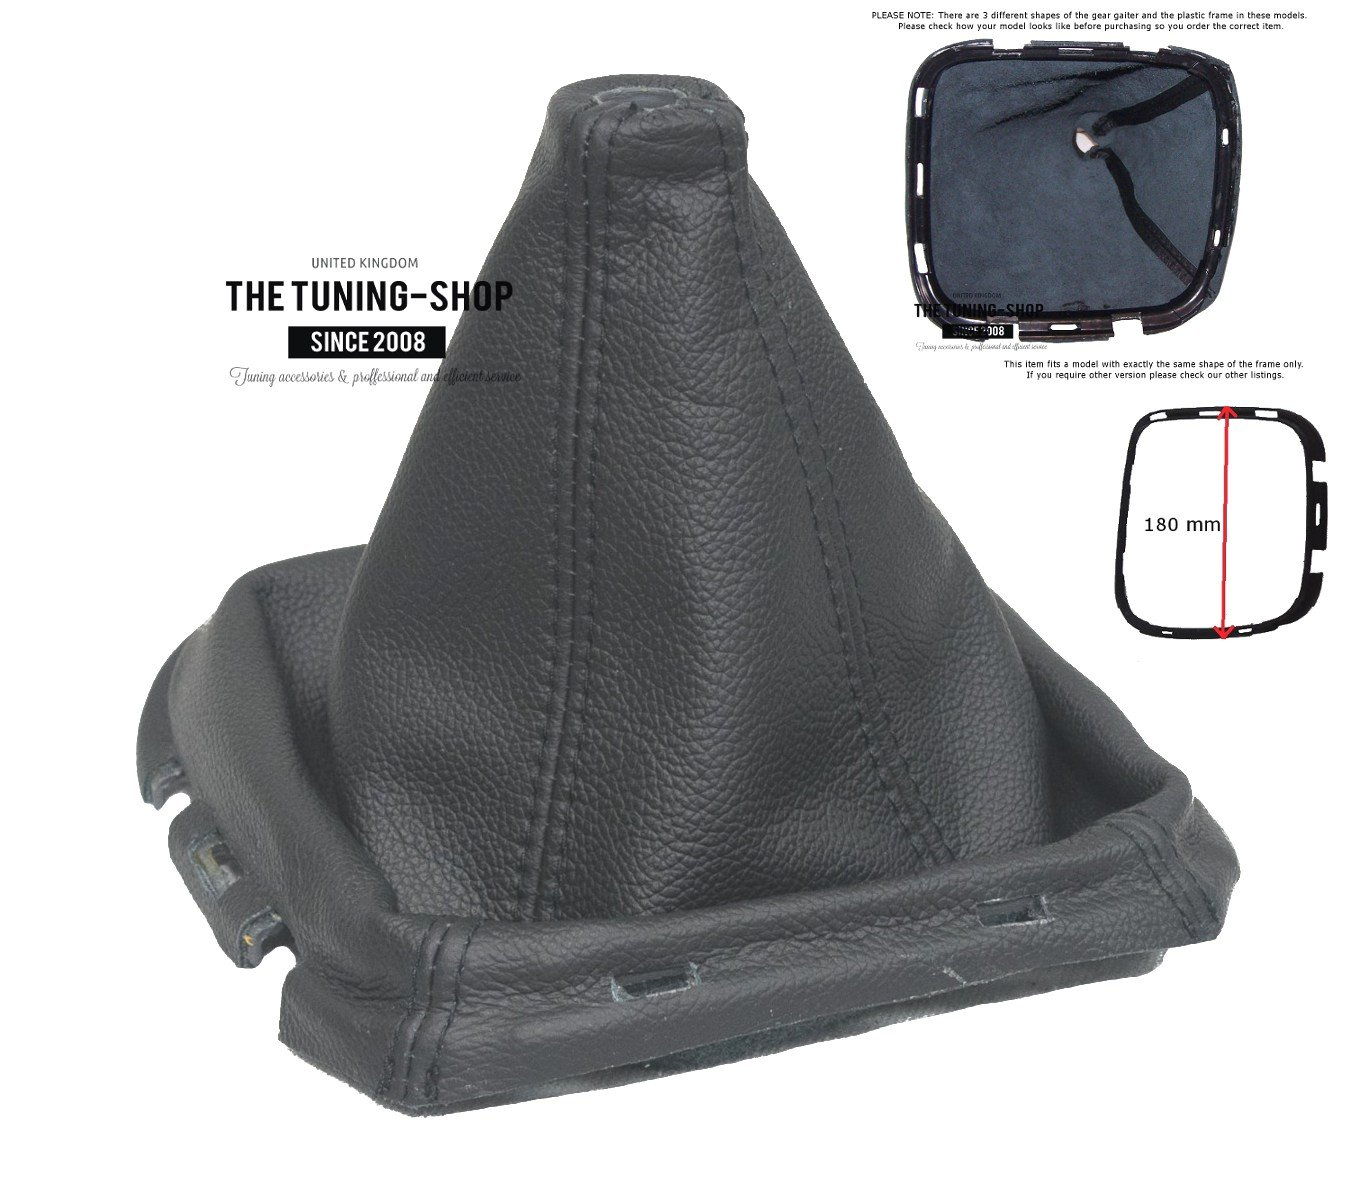 Gear Stick Gaiter with Plastic Frame Black Leather 180mm The Tuning-Shop Ltd